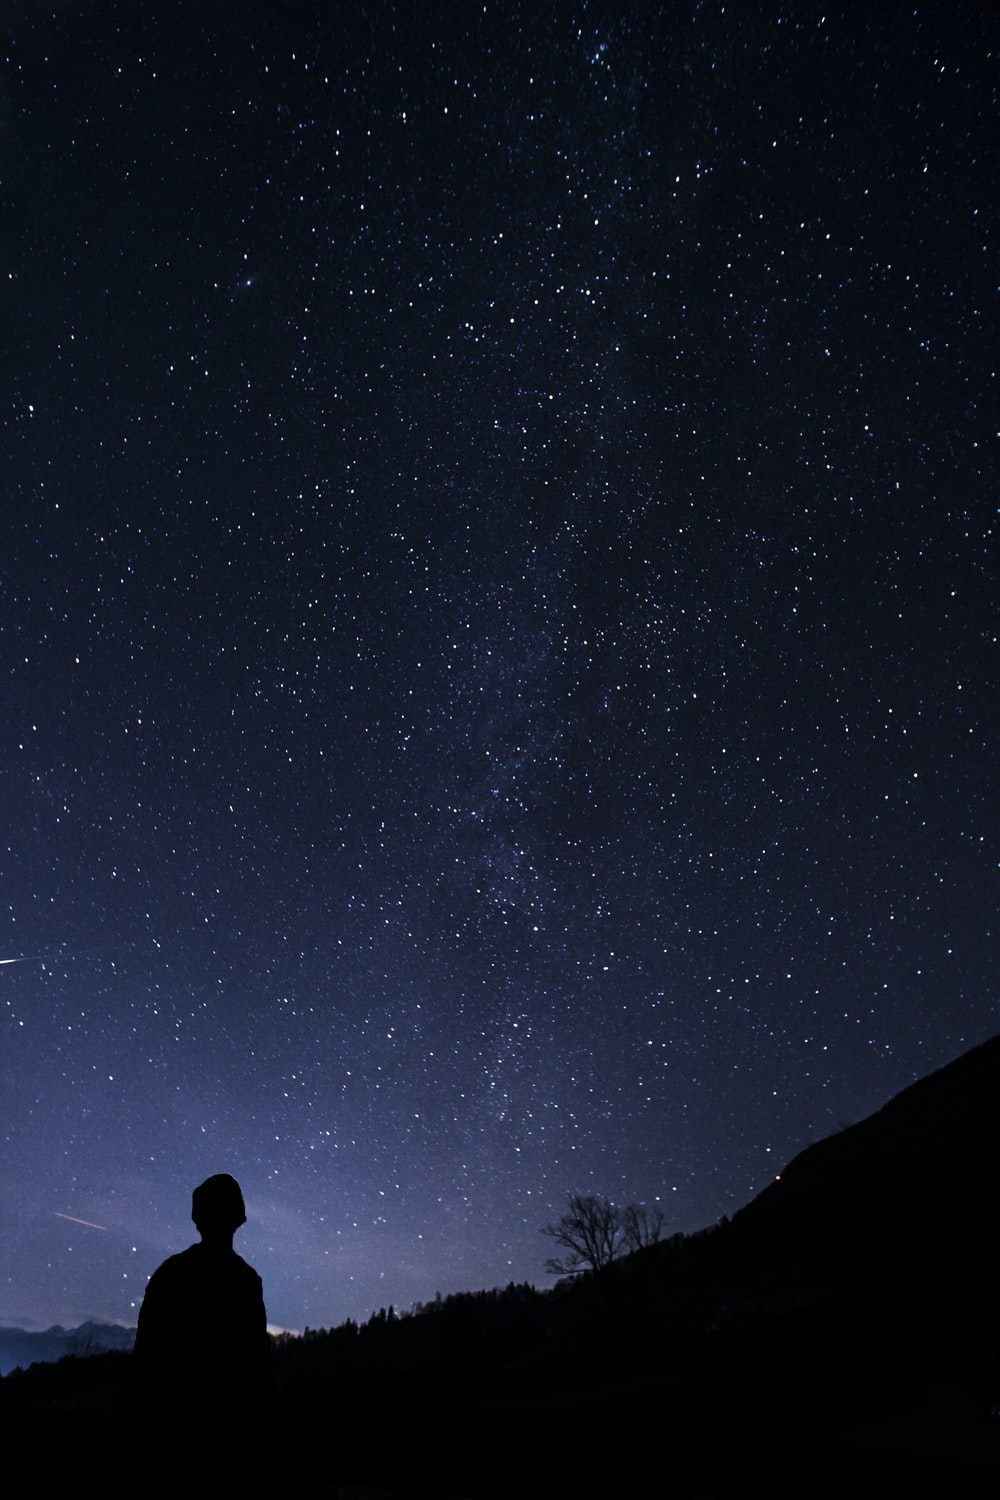 silhouette of man looking at milky way